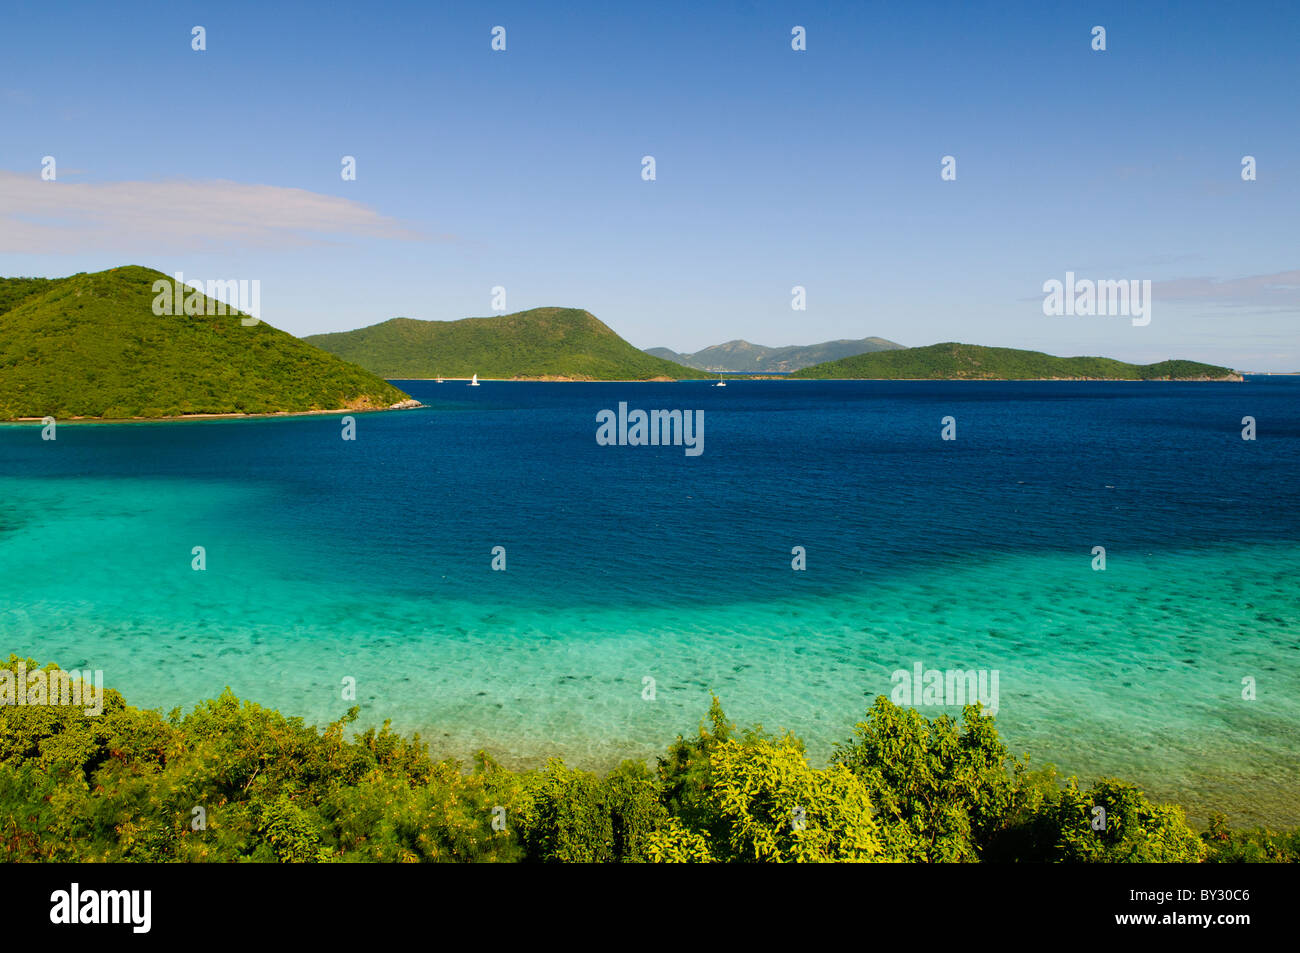 ST JOHN, US Virgin Islands - View over Leinster Bay toward (l to r) Mary Point, Great Thatch Island, and, in the - Stock Image